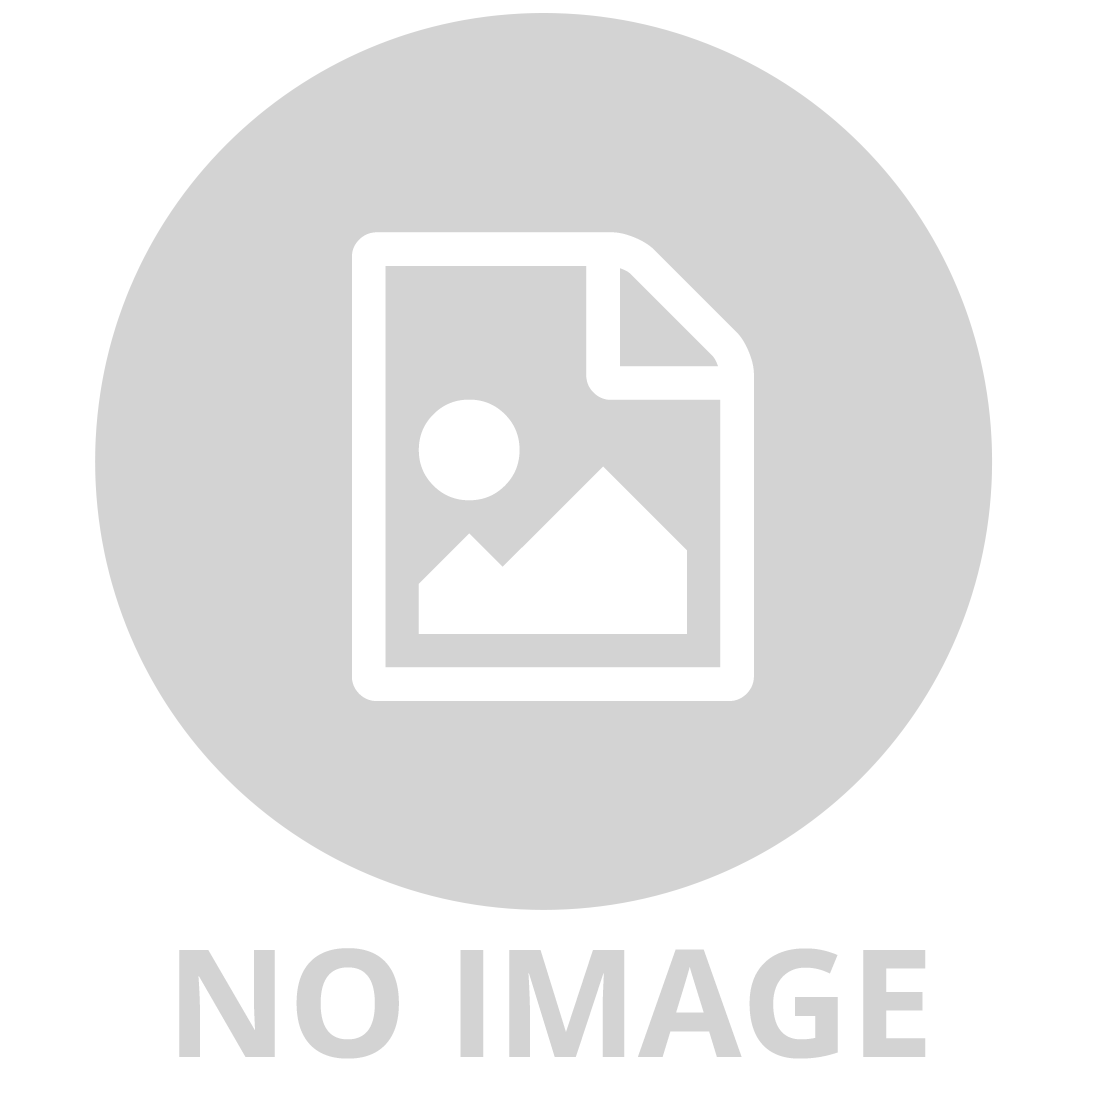 FAT BOY RETRO SKATEBOARD 30